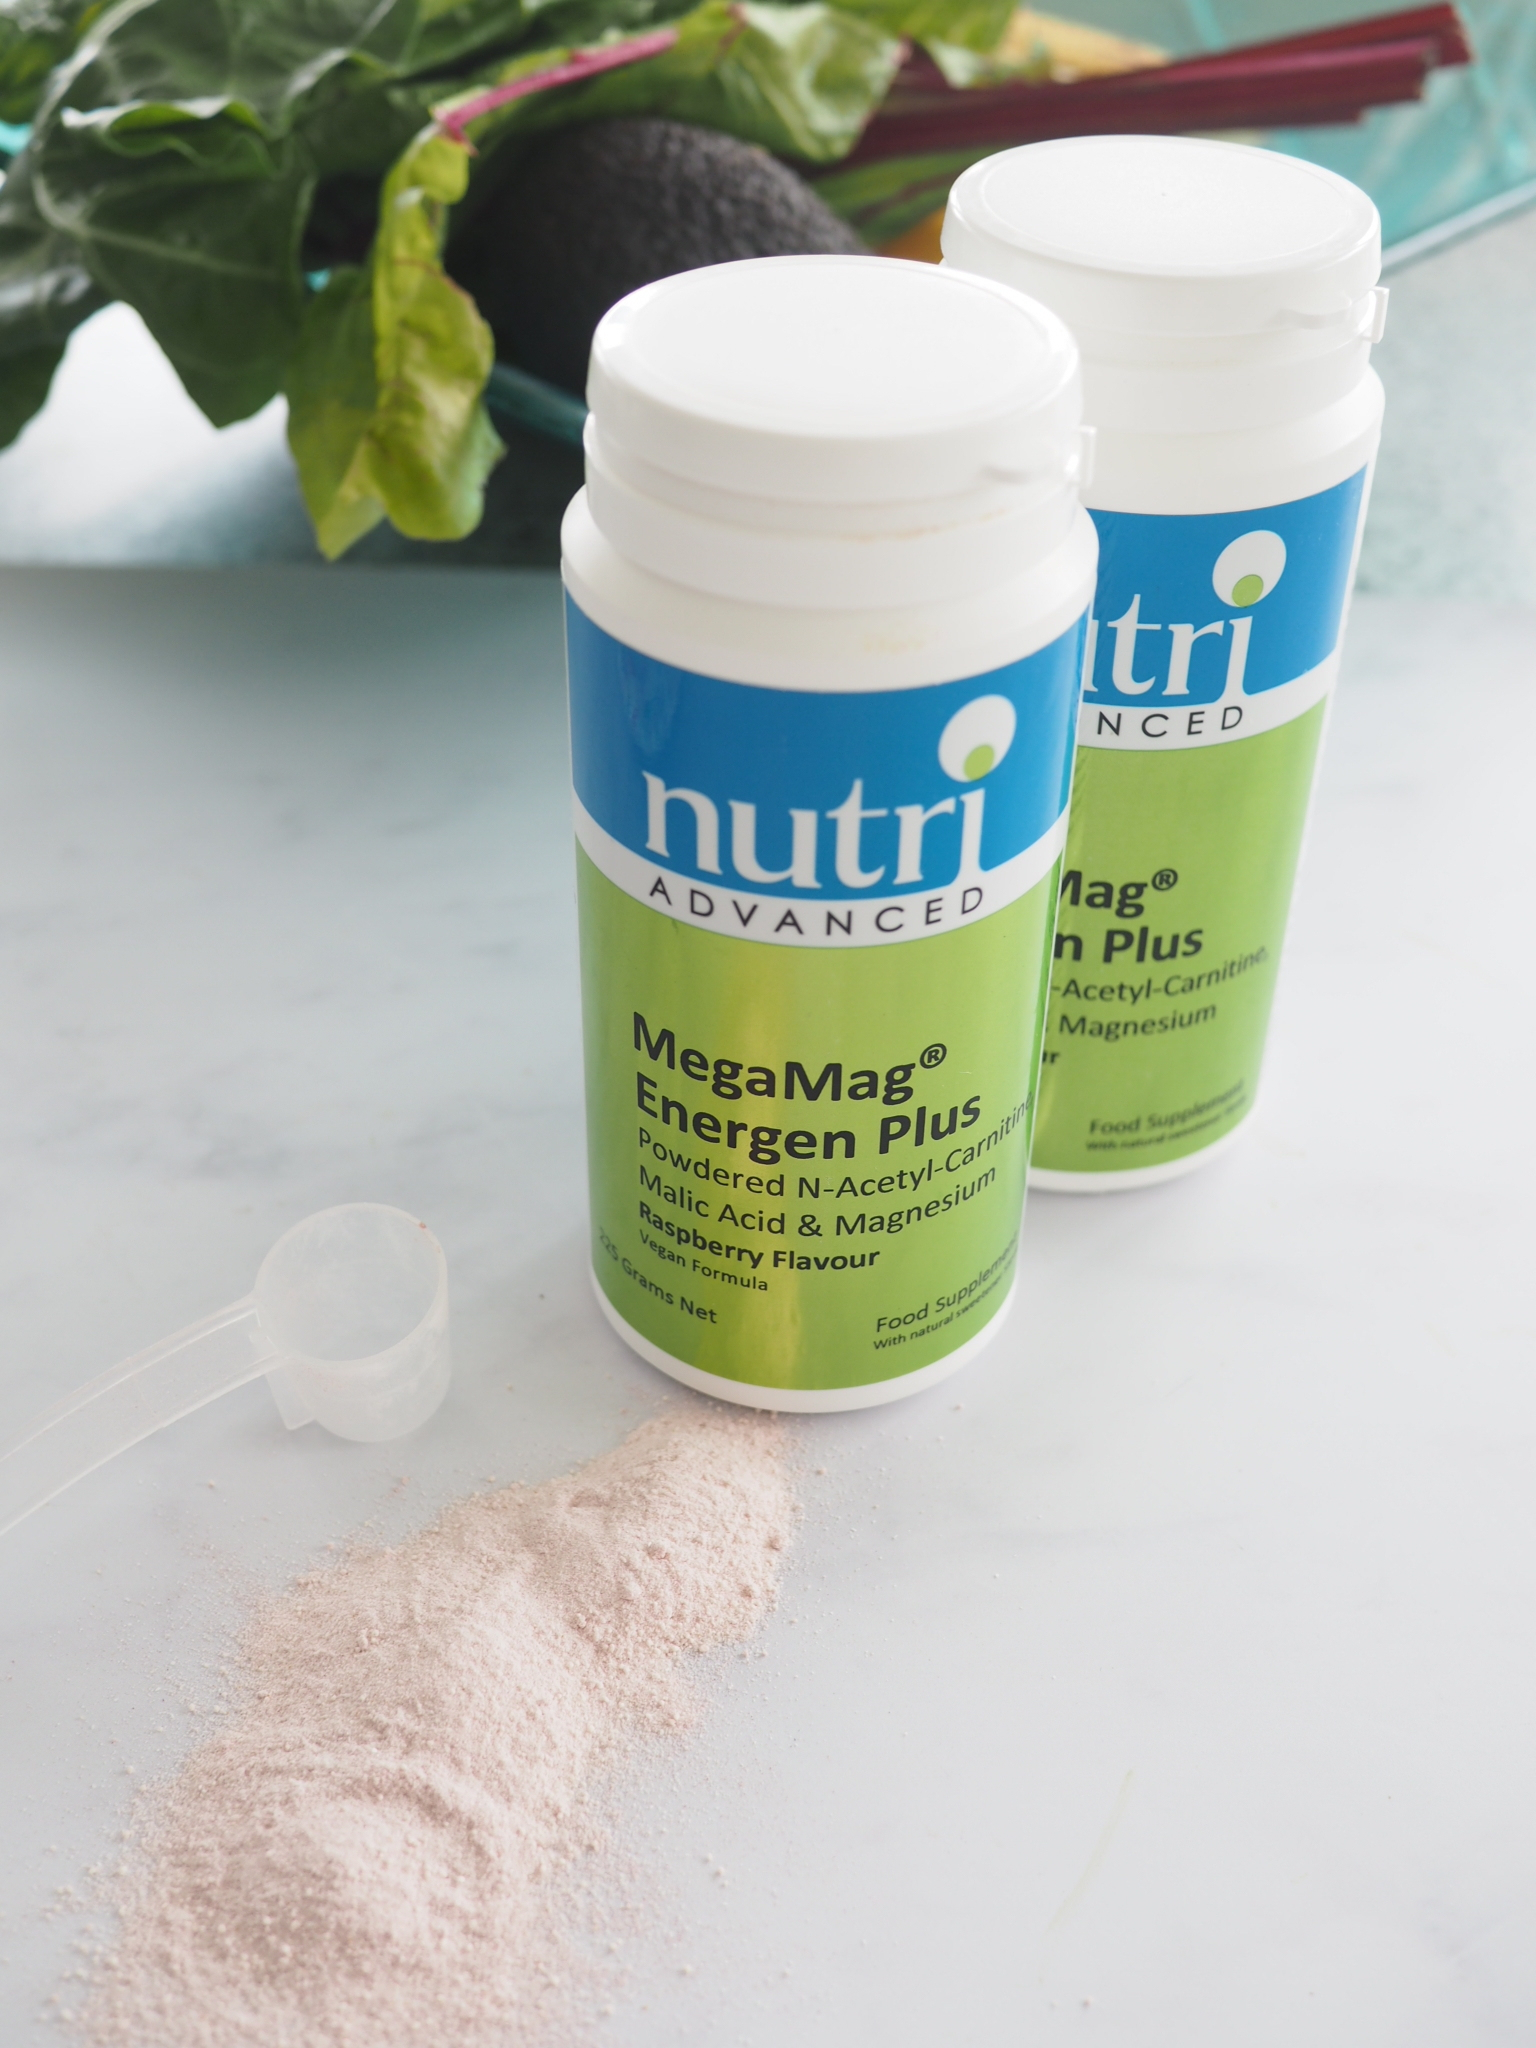 The Mother of all Minerals, magnesium. Essential for optimum health & ageing.